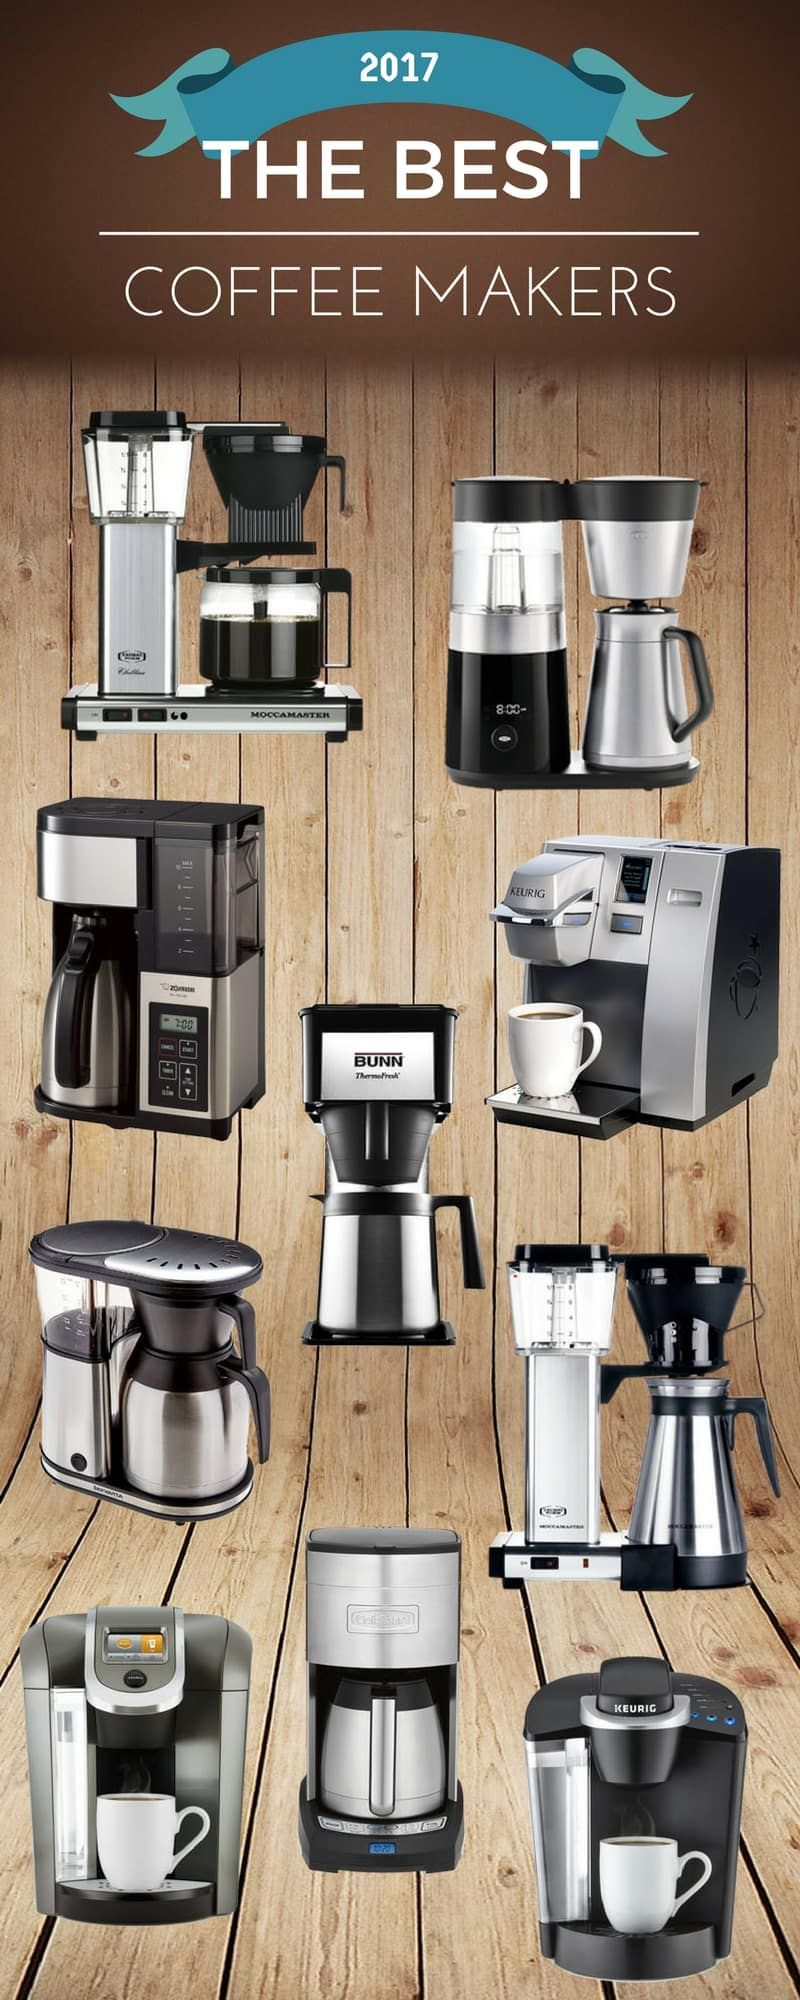 The 10 Best Coffee Makers In 2017 Dopimize Best Coffee Maker Coffee Maker Best Coffee